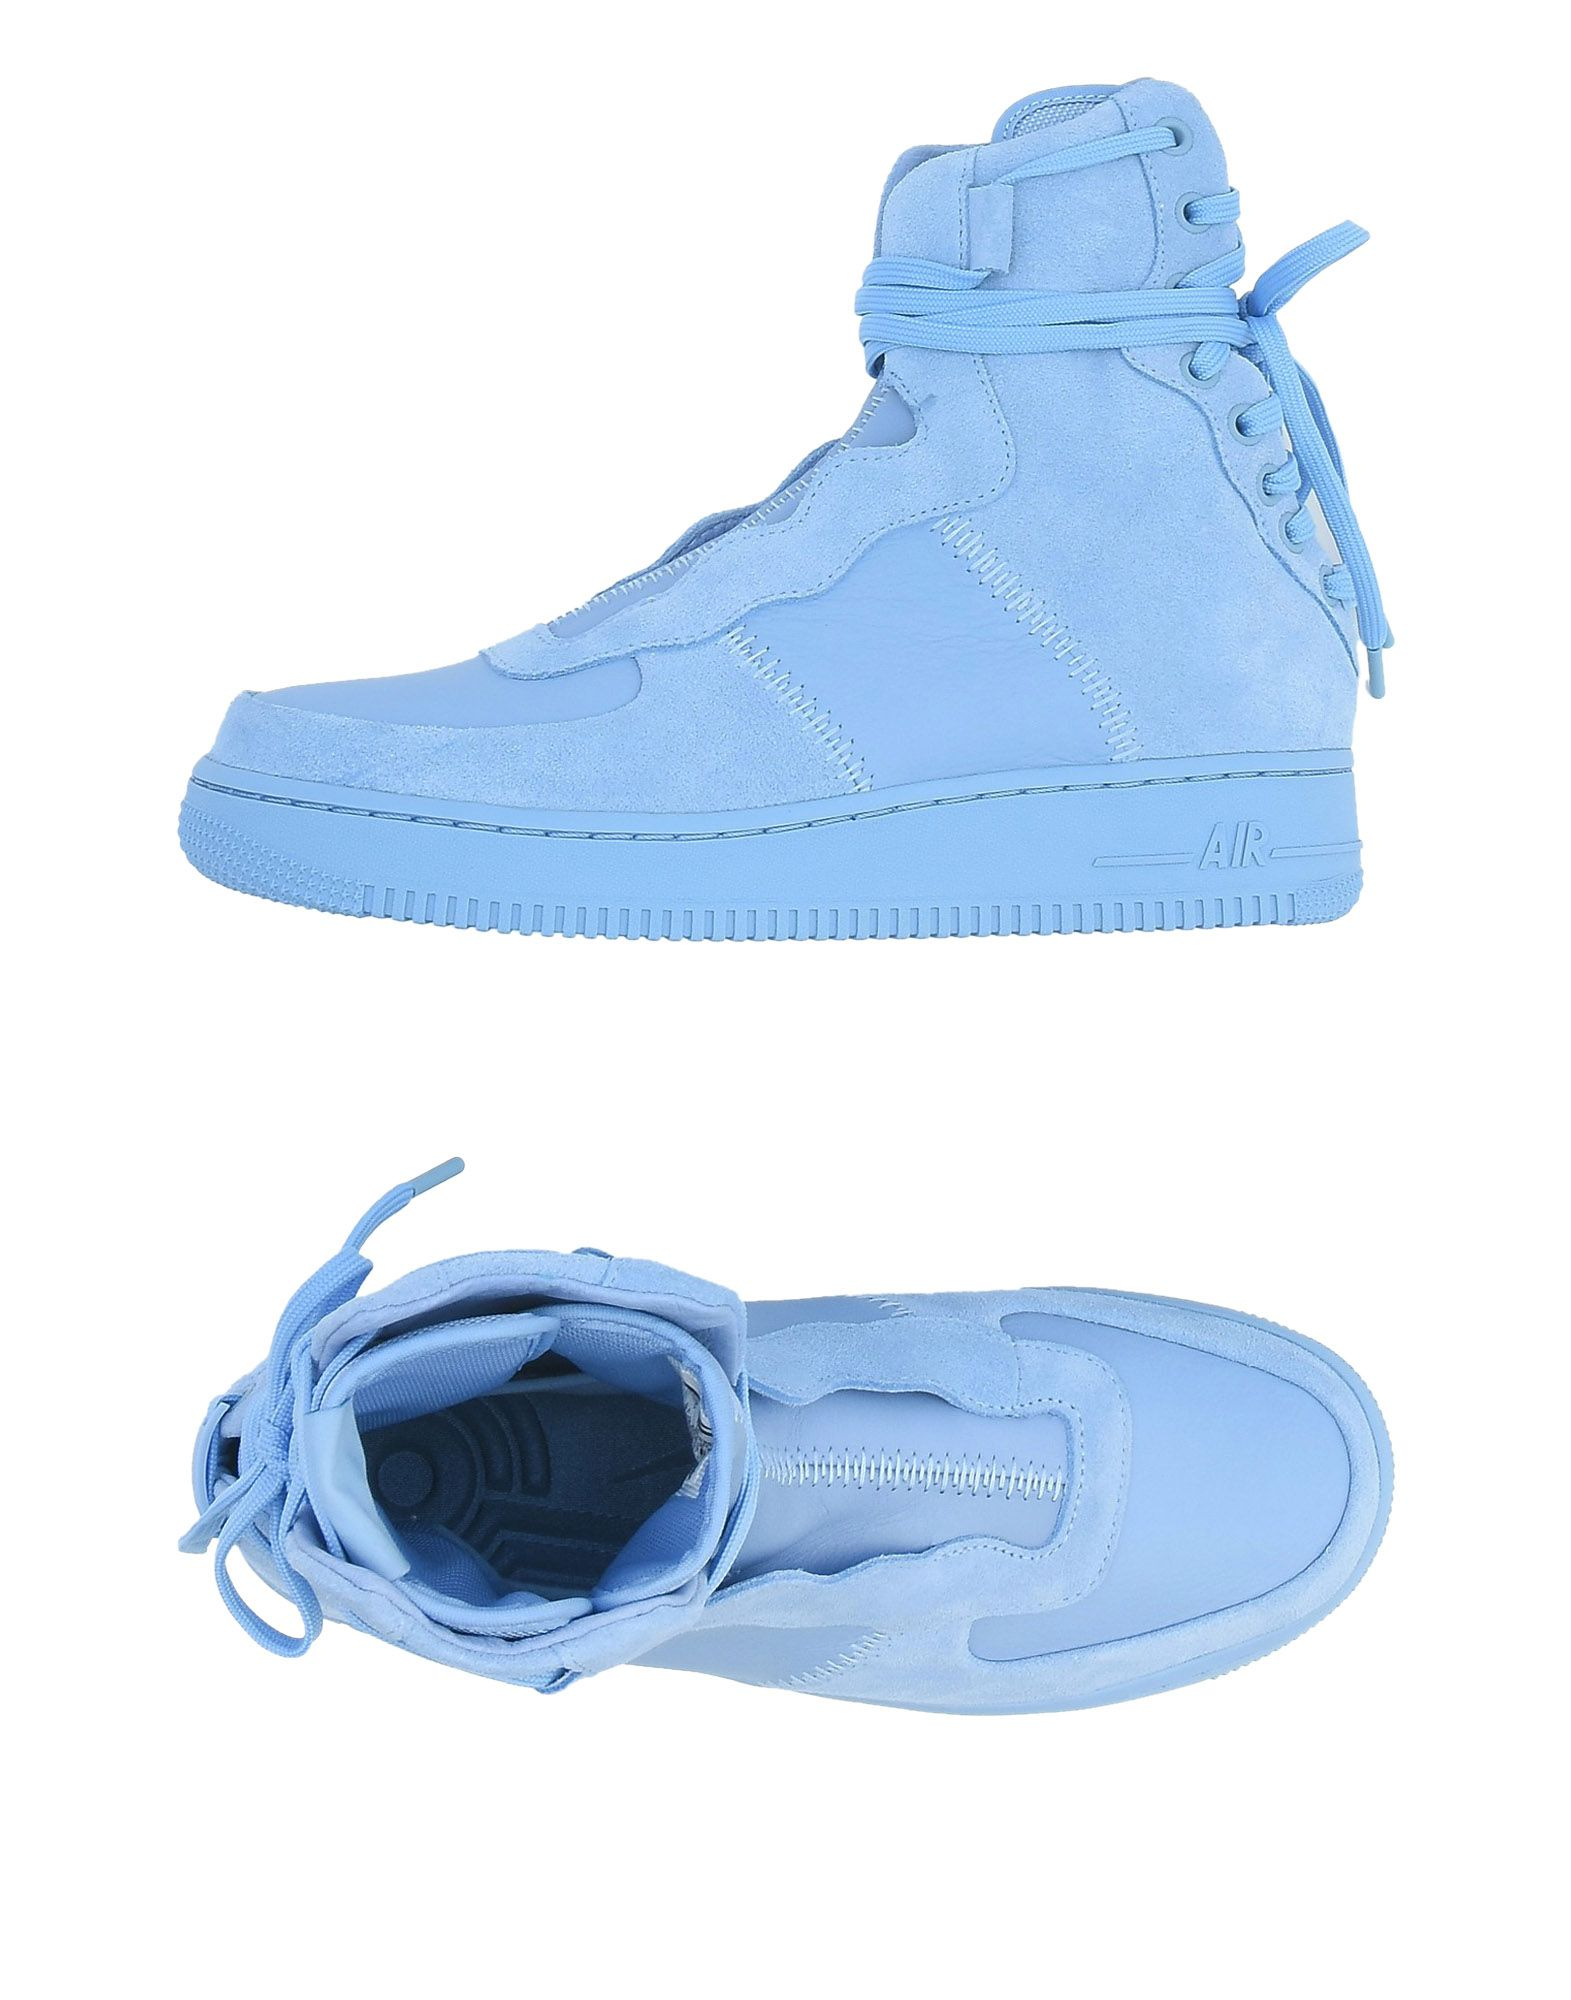 Scarpe Force da Ginnastica Nike Air Force Scarpe 1 Rebel High - Donna - 11504642TJ e1ed52